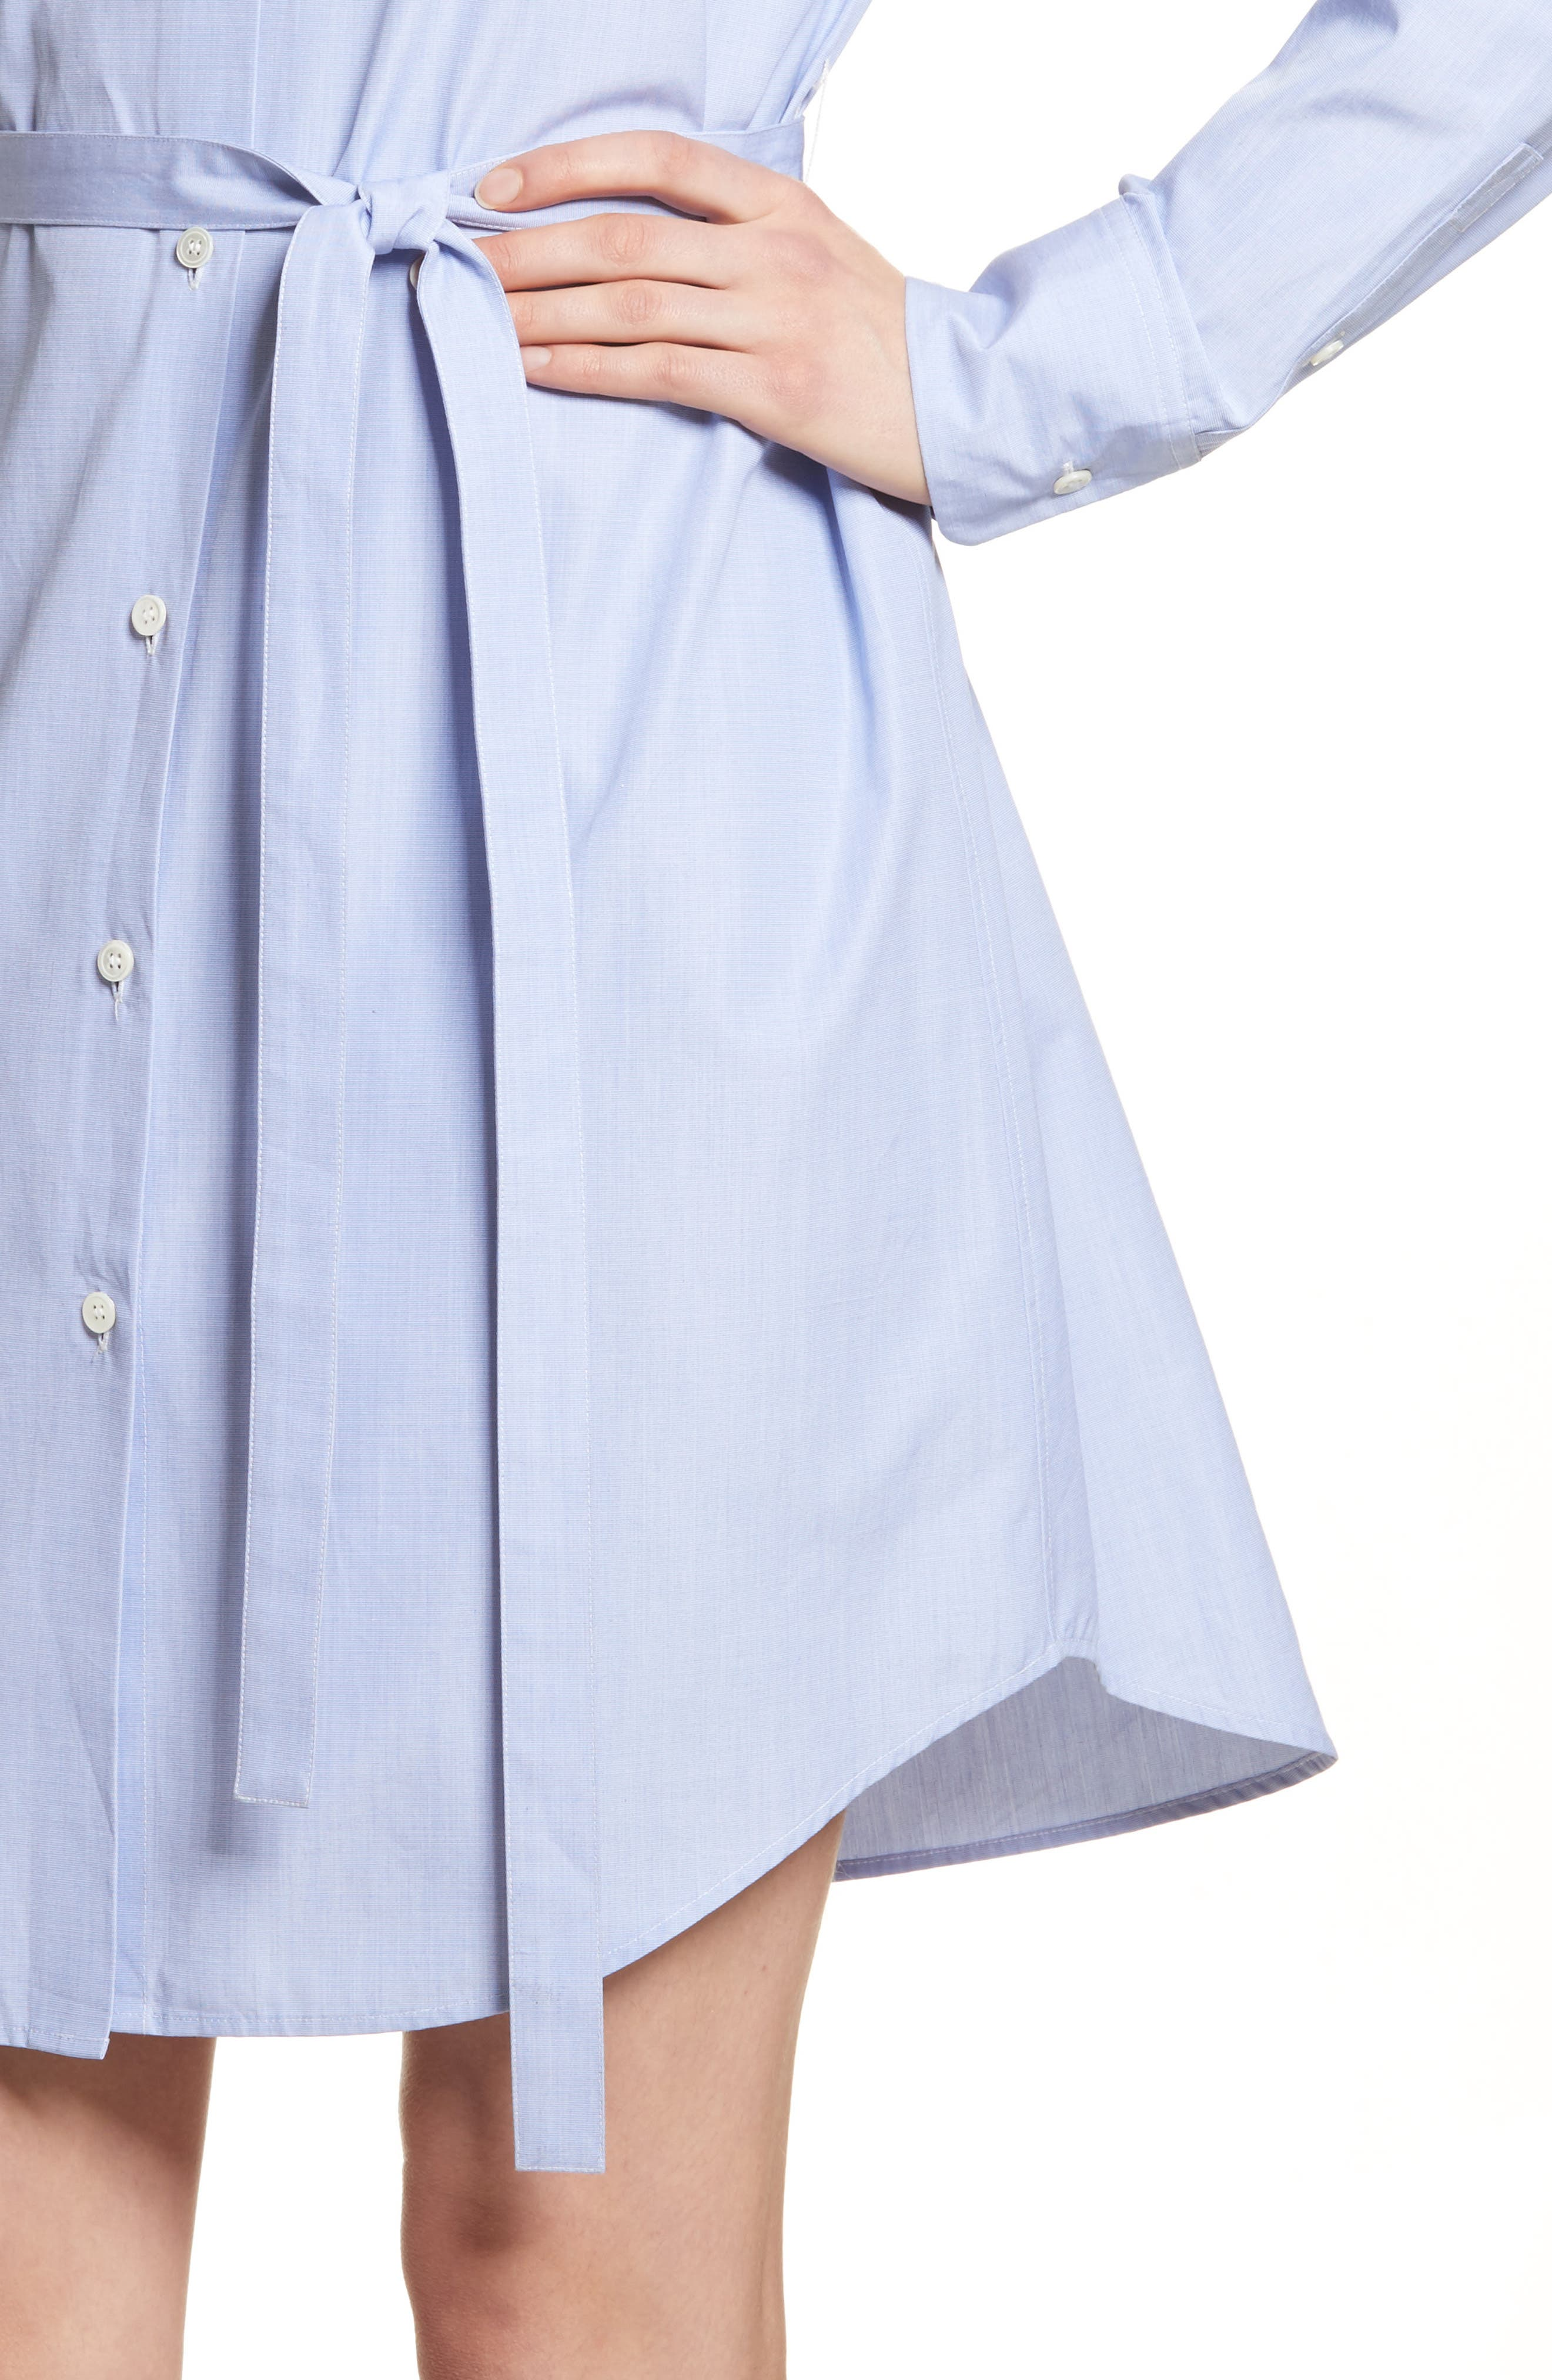 Crowley Cotton Shirtdress,                             Alternate thumbnail 4, color,                             473